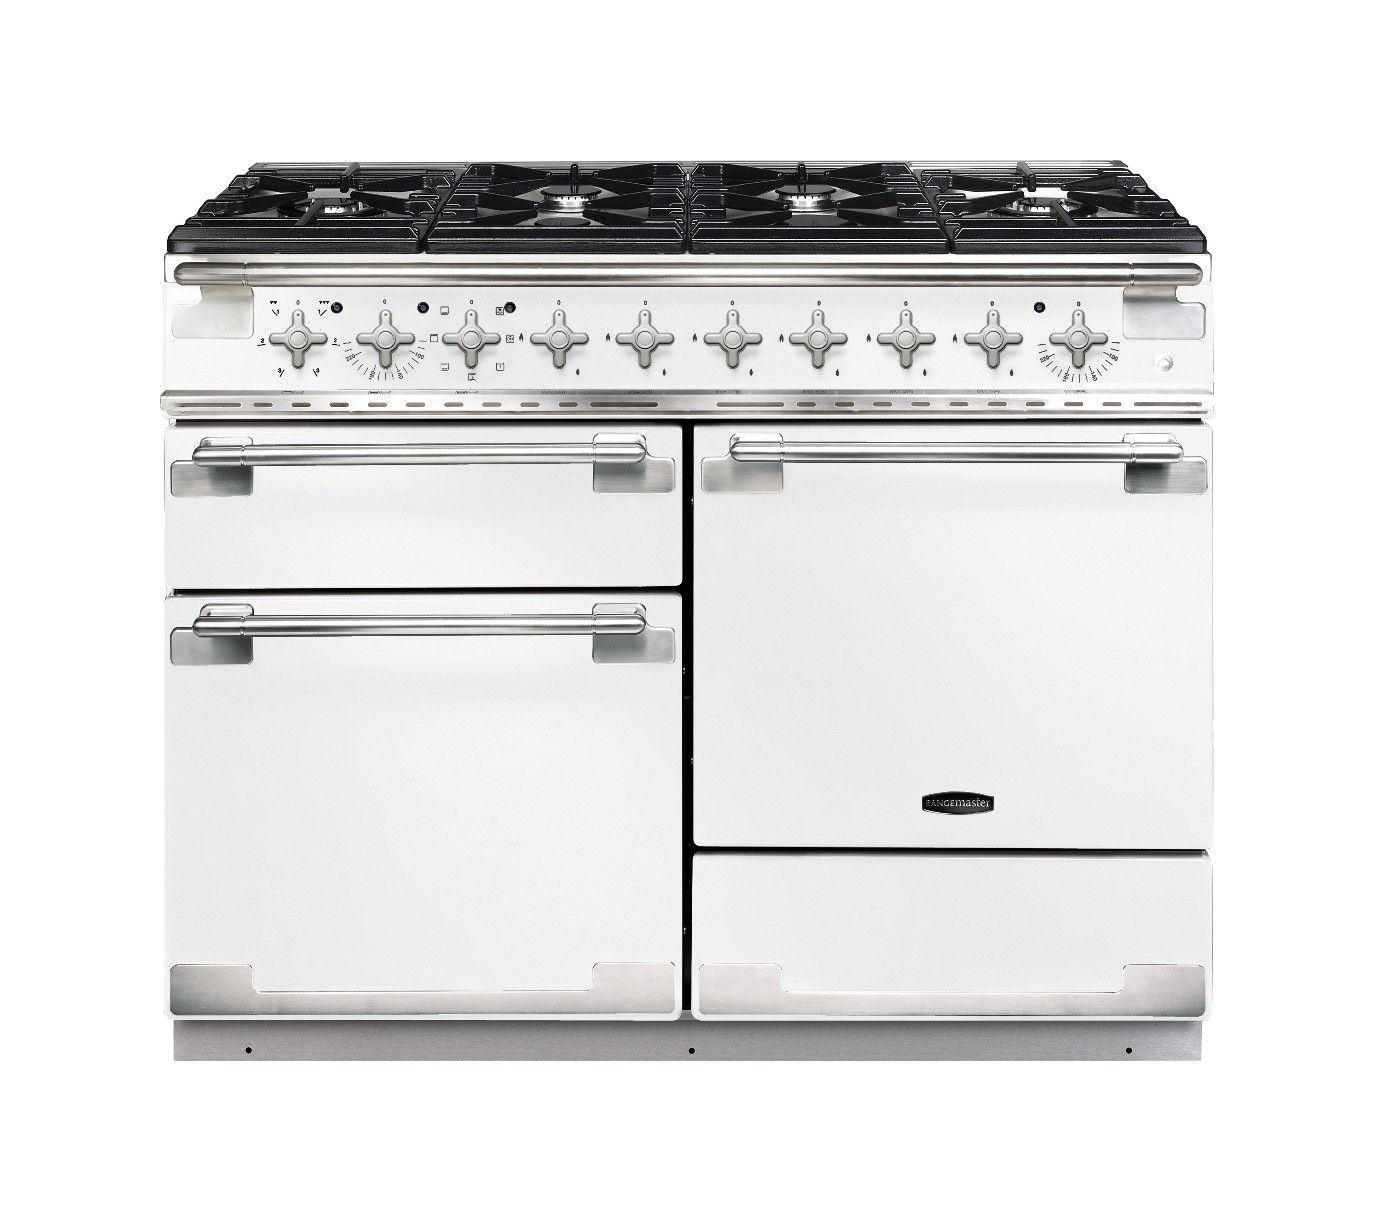 Uncategorized. British Gas Homecare Kitchen Appliances. wingsioskins ...